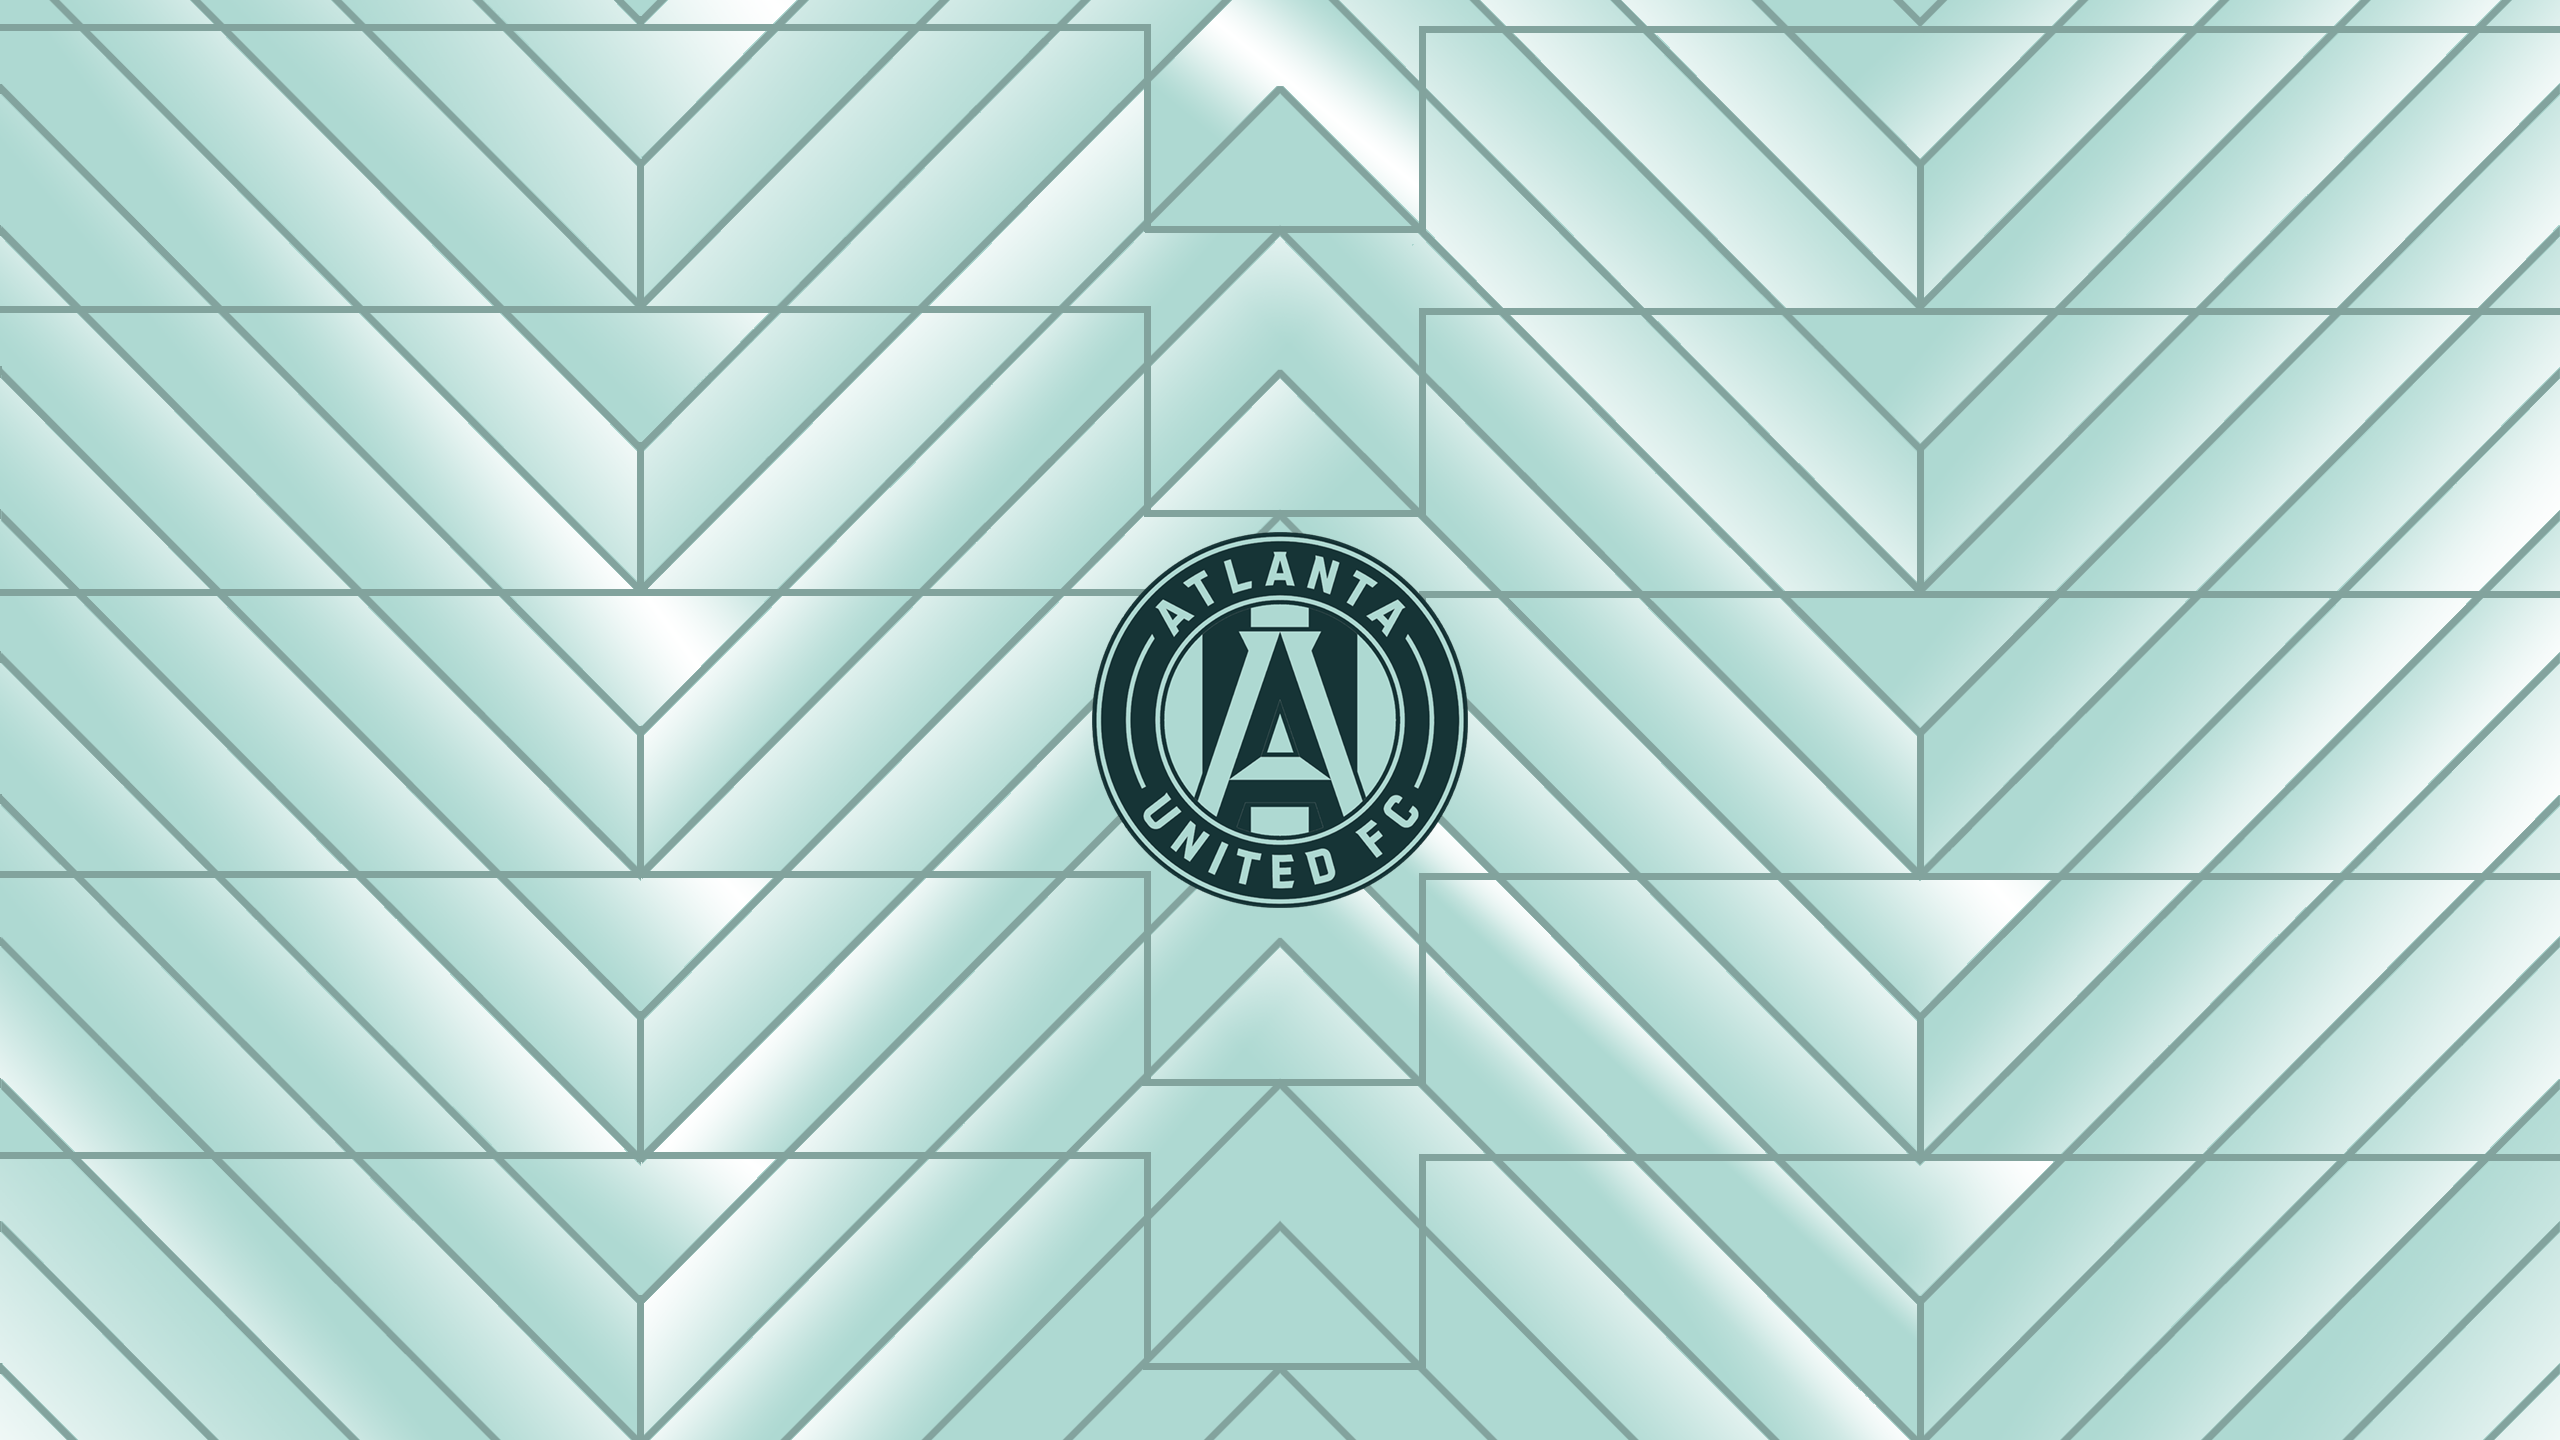 Atlanta United FC (Away)